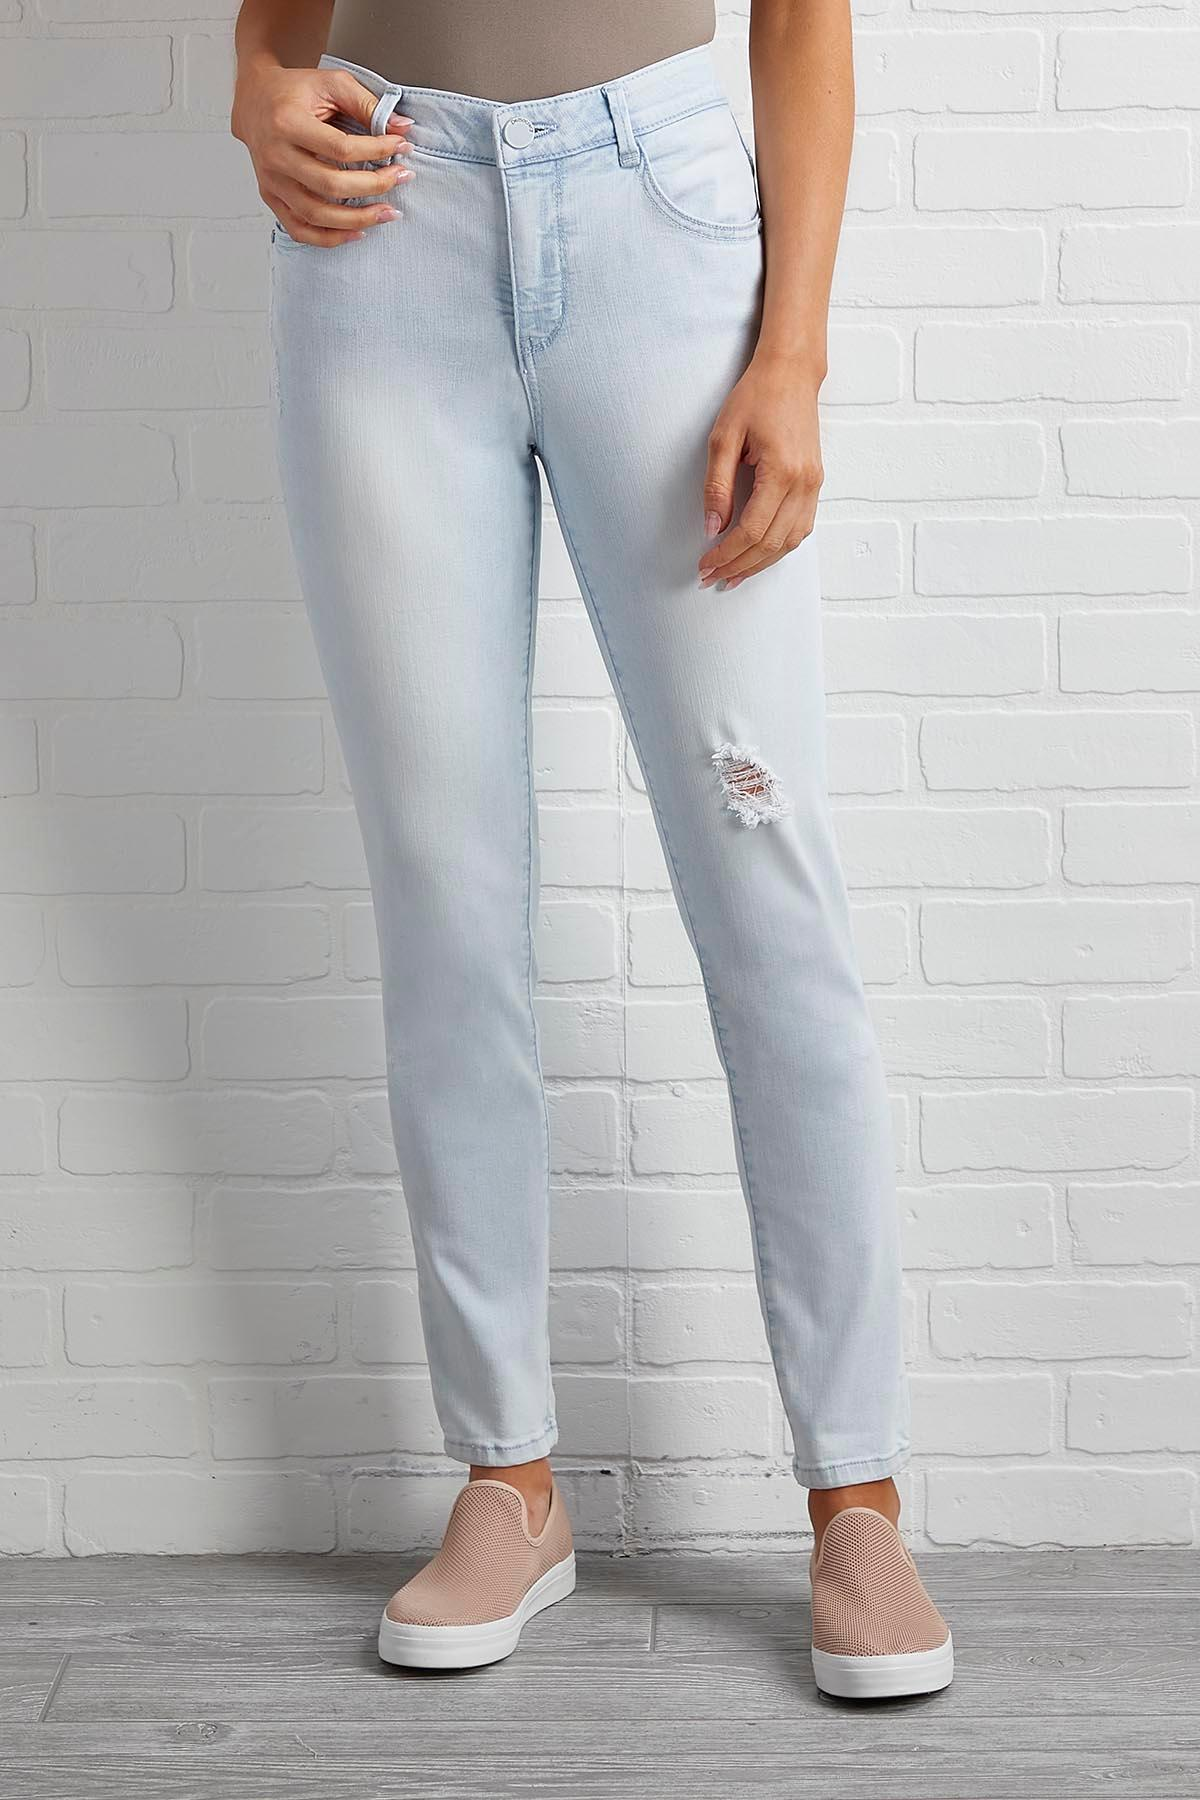 Tears Left To Cry Jeans